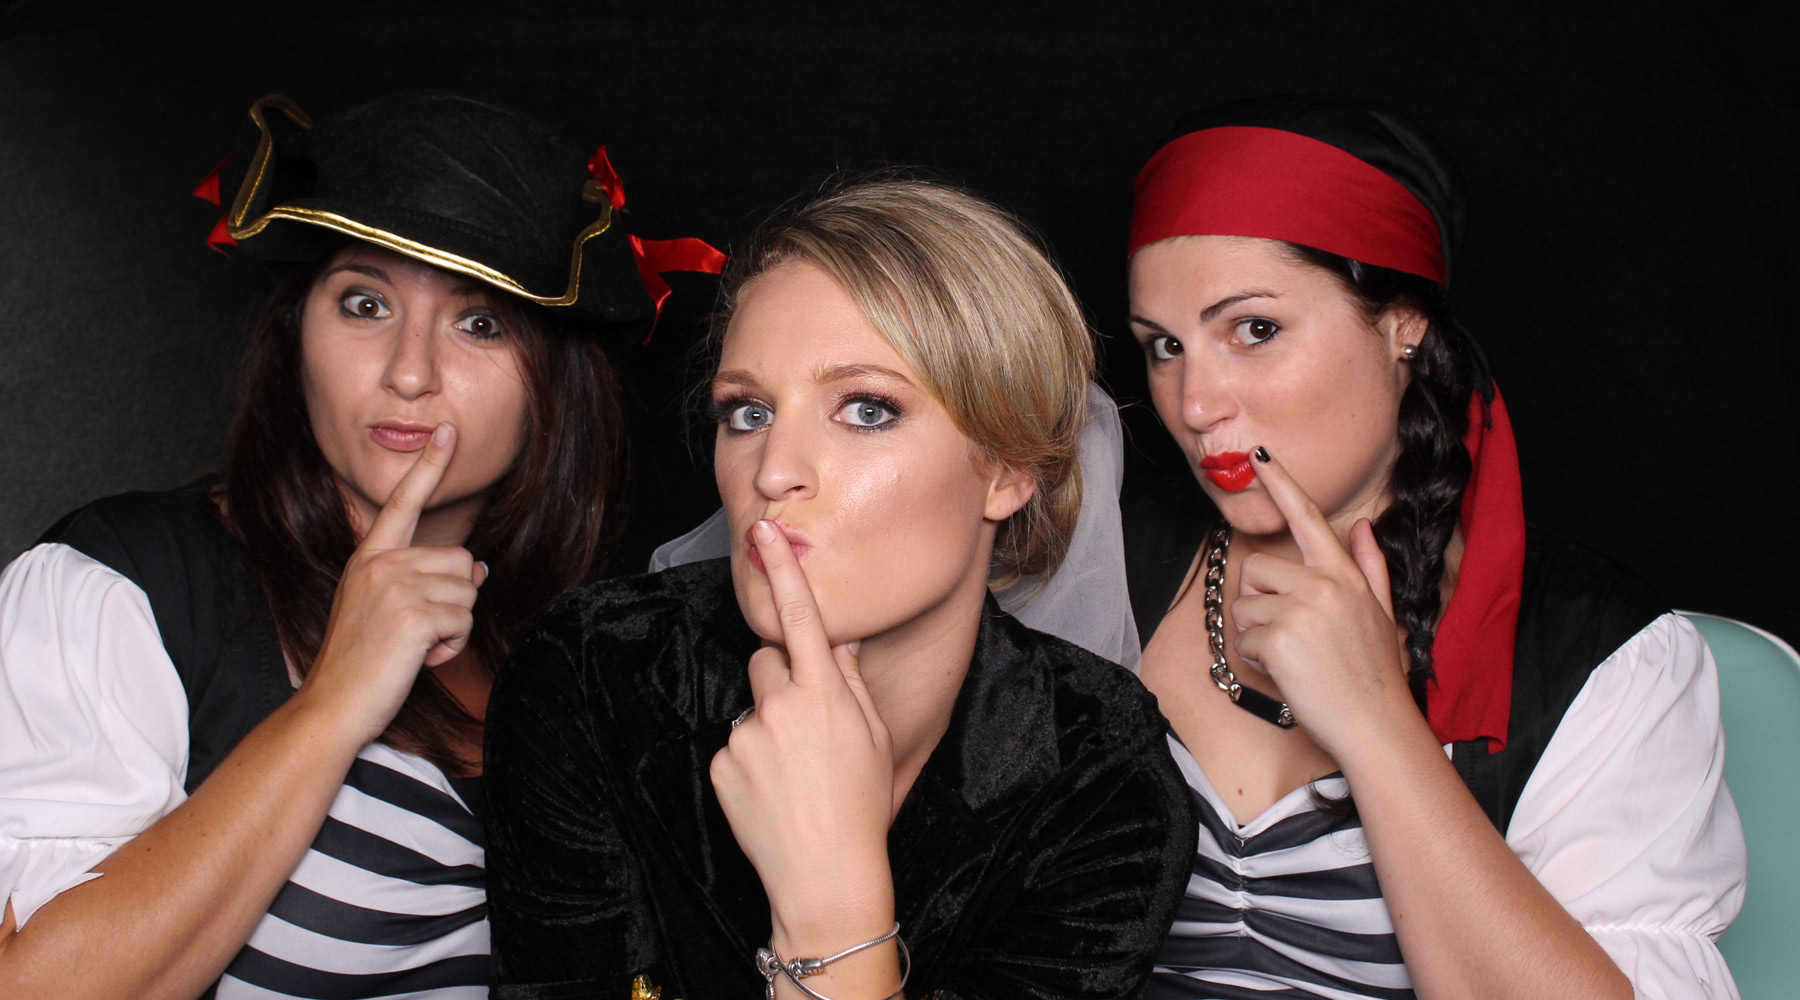 hens party ideas, photobooth hire private party, auckland hens party, photo booth hire auckland, pirate party ideas